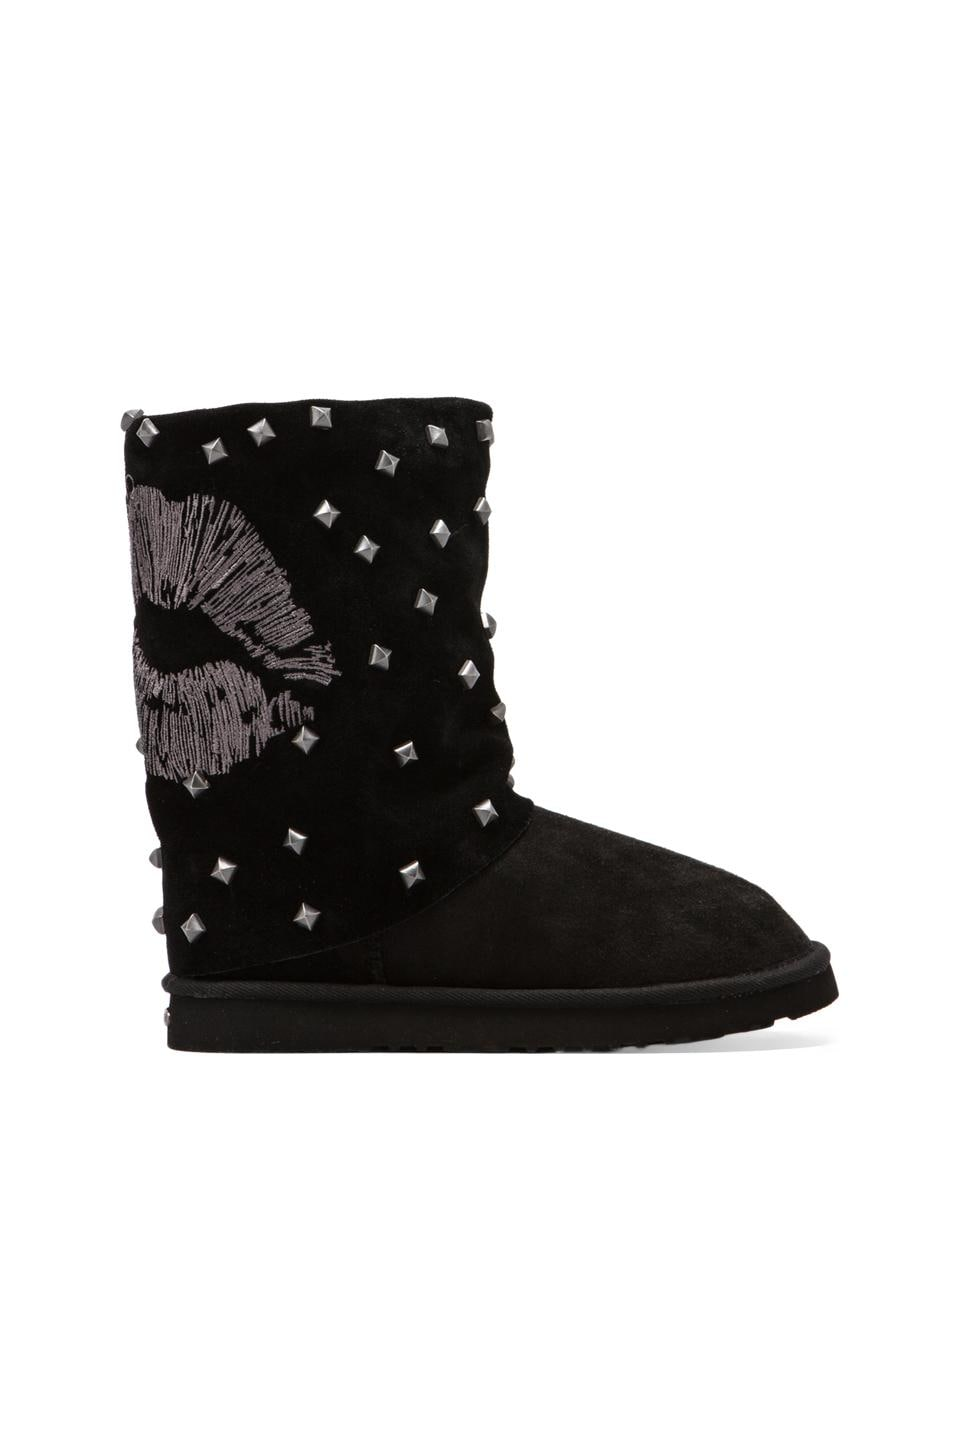 Koolaburra x Lauren Moshi Lips Boot with Twinface Sheepskin in Black